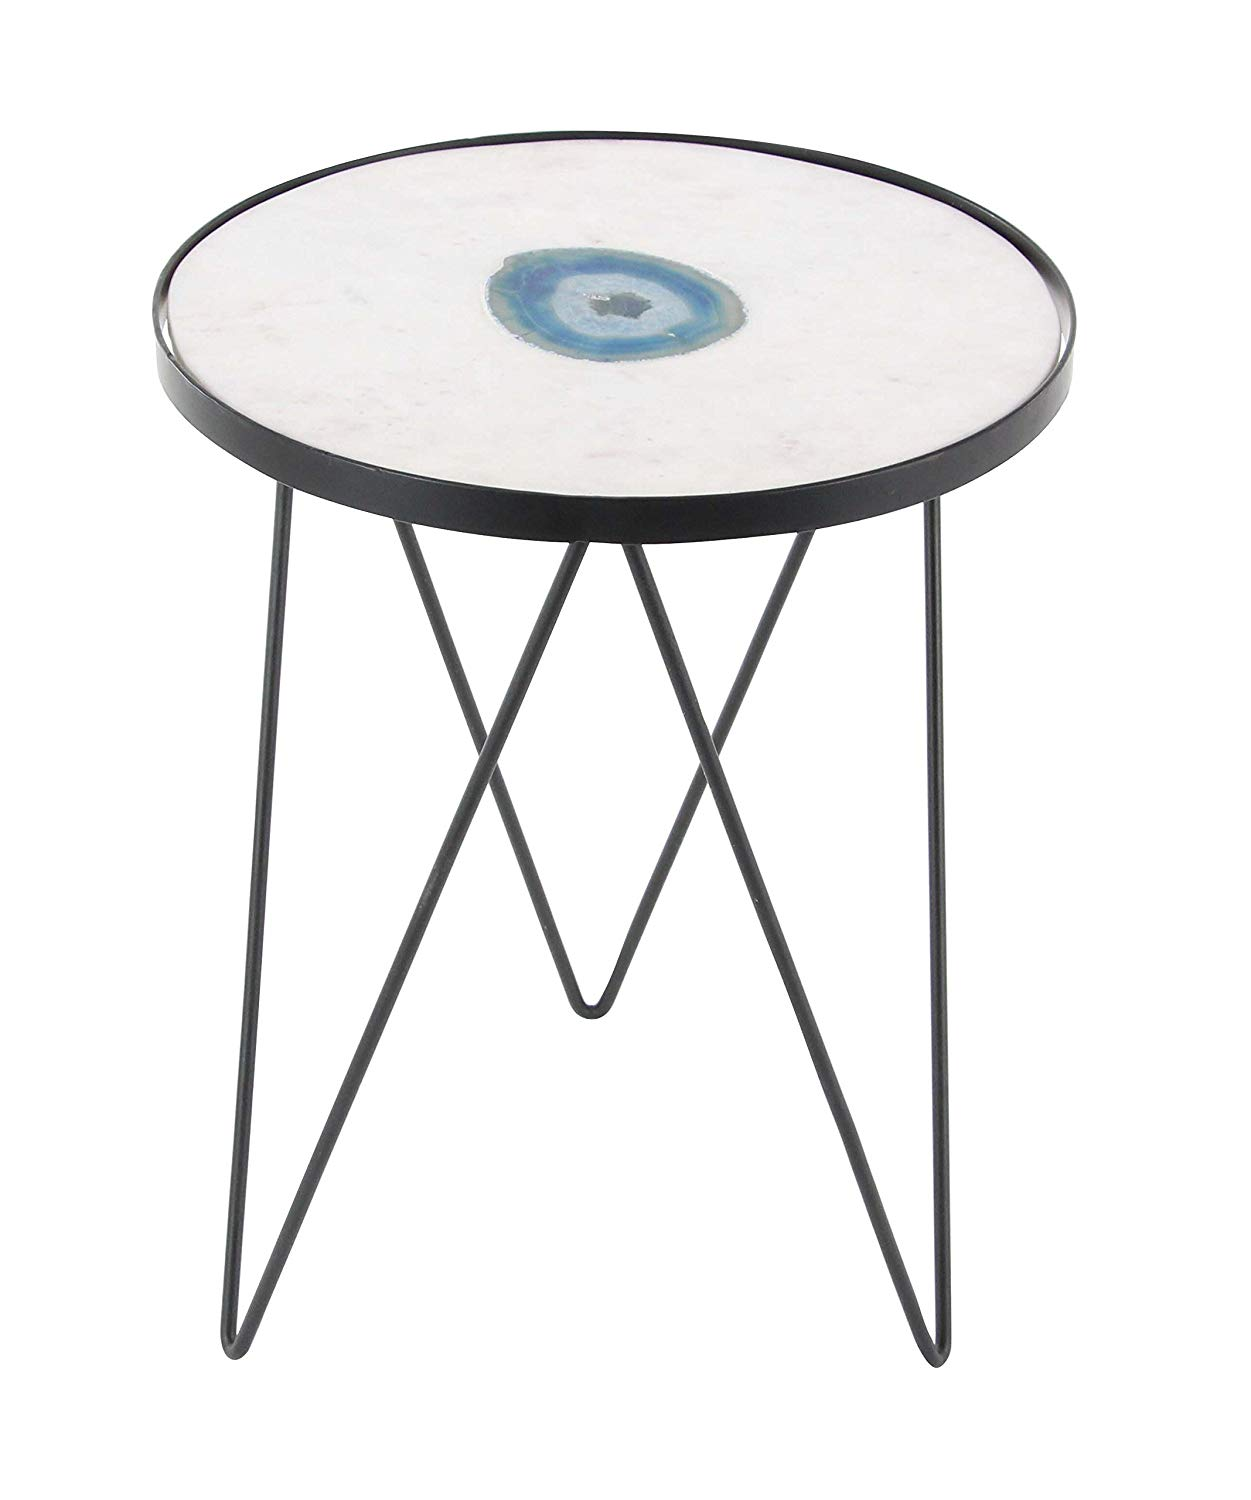 "Deco 79 42224 17""/22"" Metal and Marble Agat Accent Table, 17"" x 22"", White/Blue/Black"